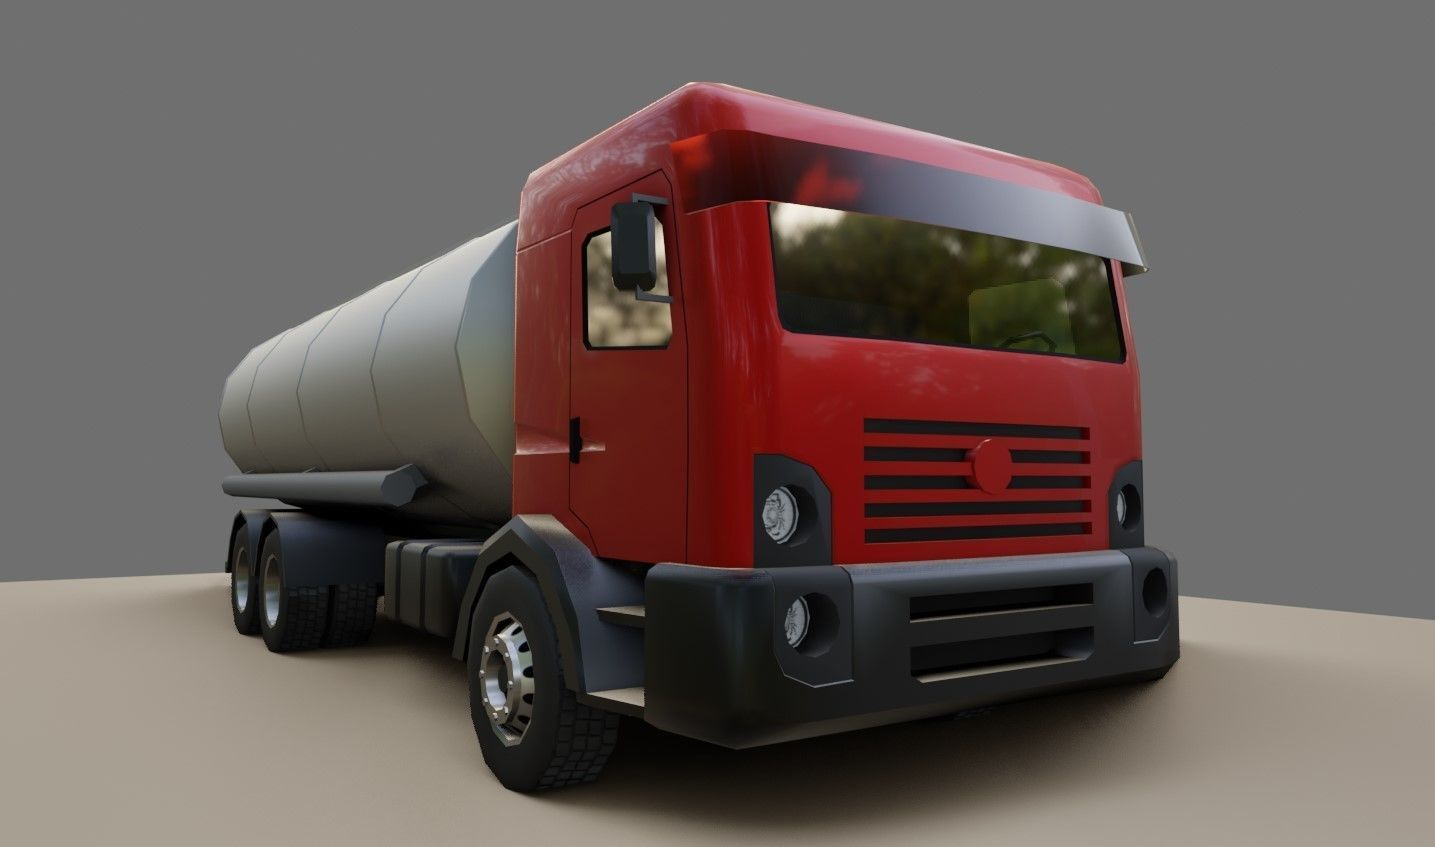 Red Truck - Tank - Fuel - Gasoline - Caminhao Tanque